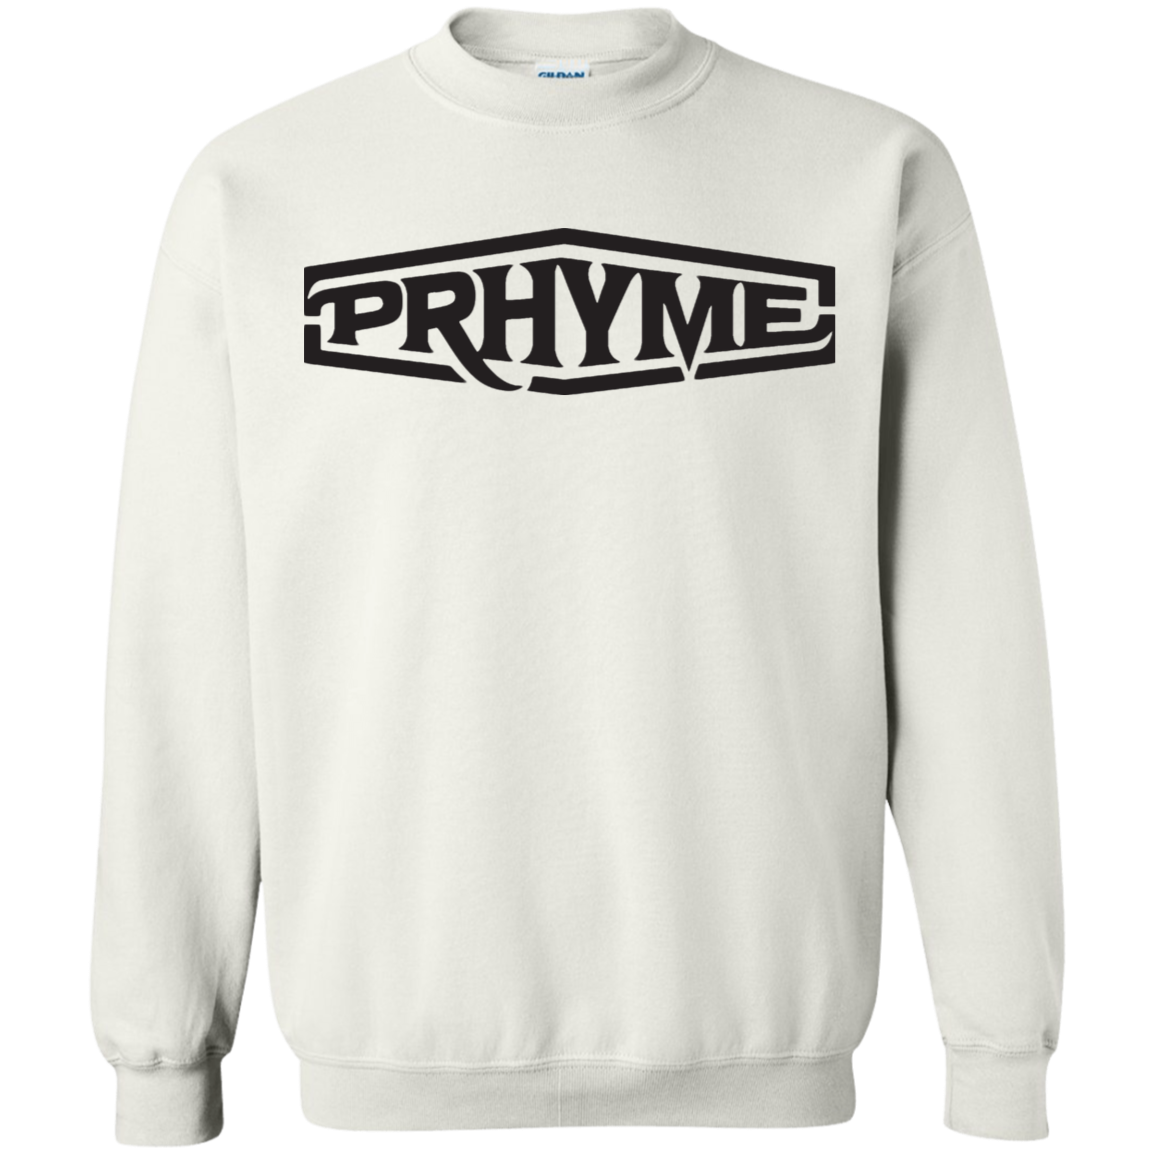 Prhyme Sweater